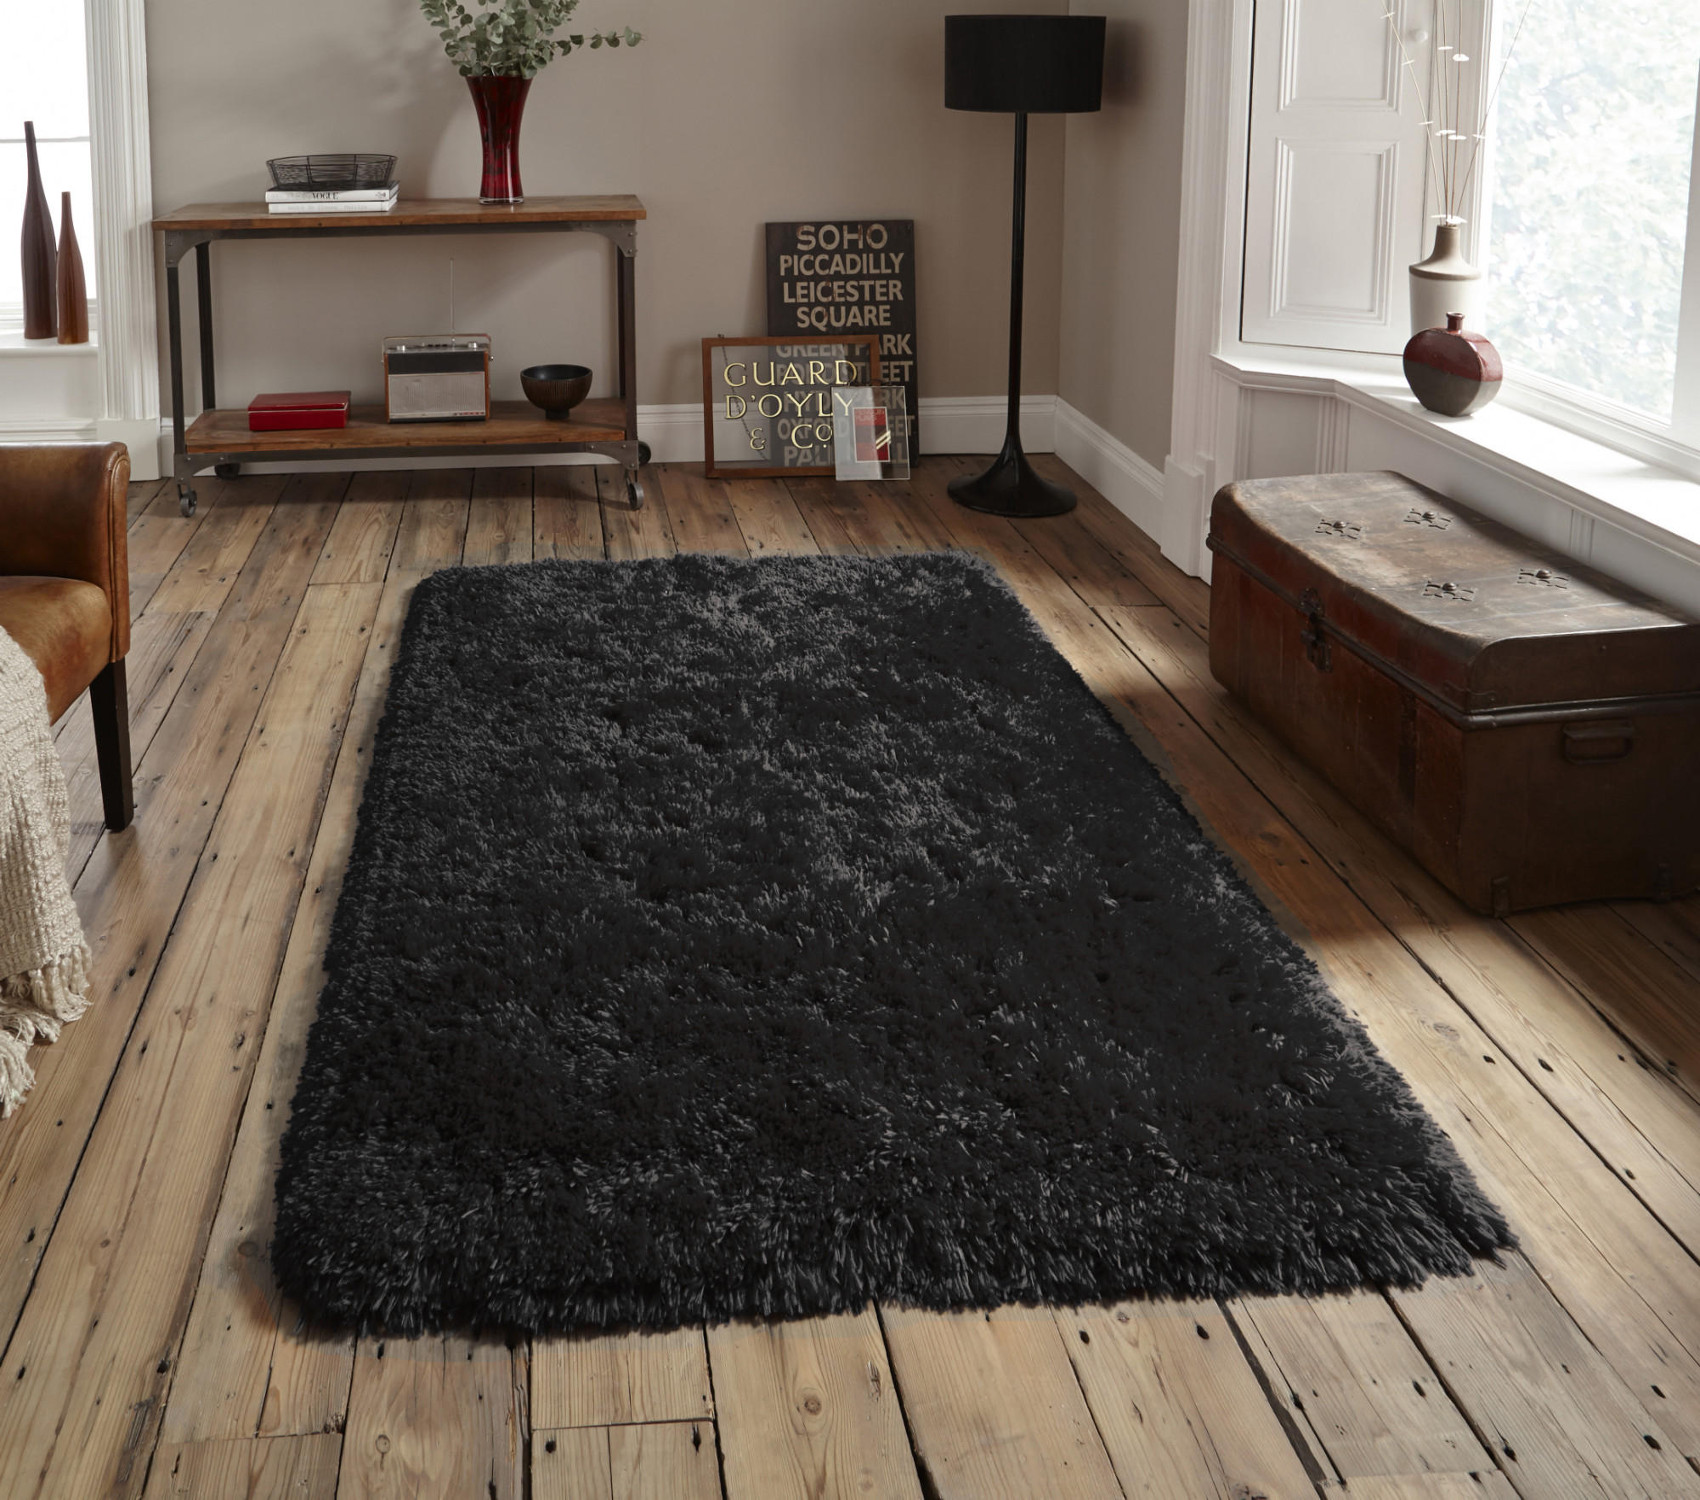 Super Soft Hand Tufted Shaggy Rug Polar 8.5cm Pile 100